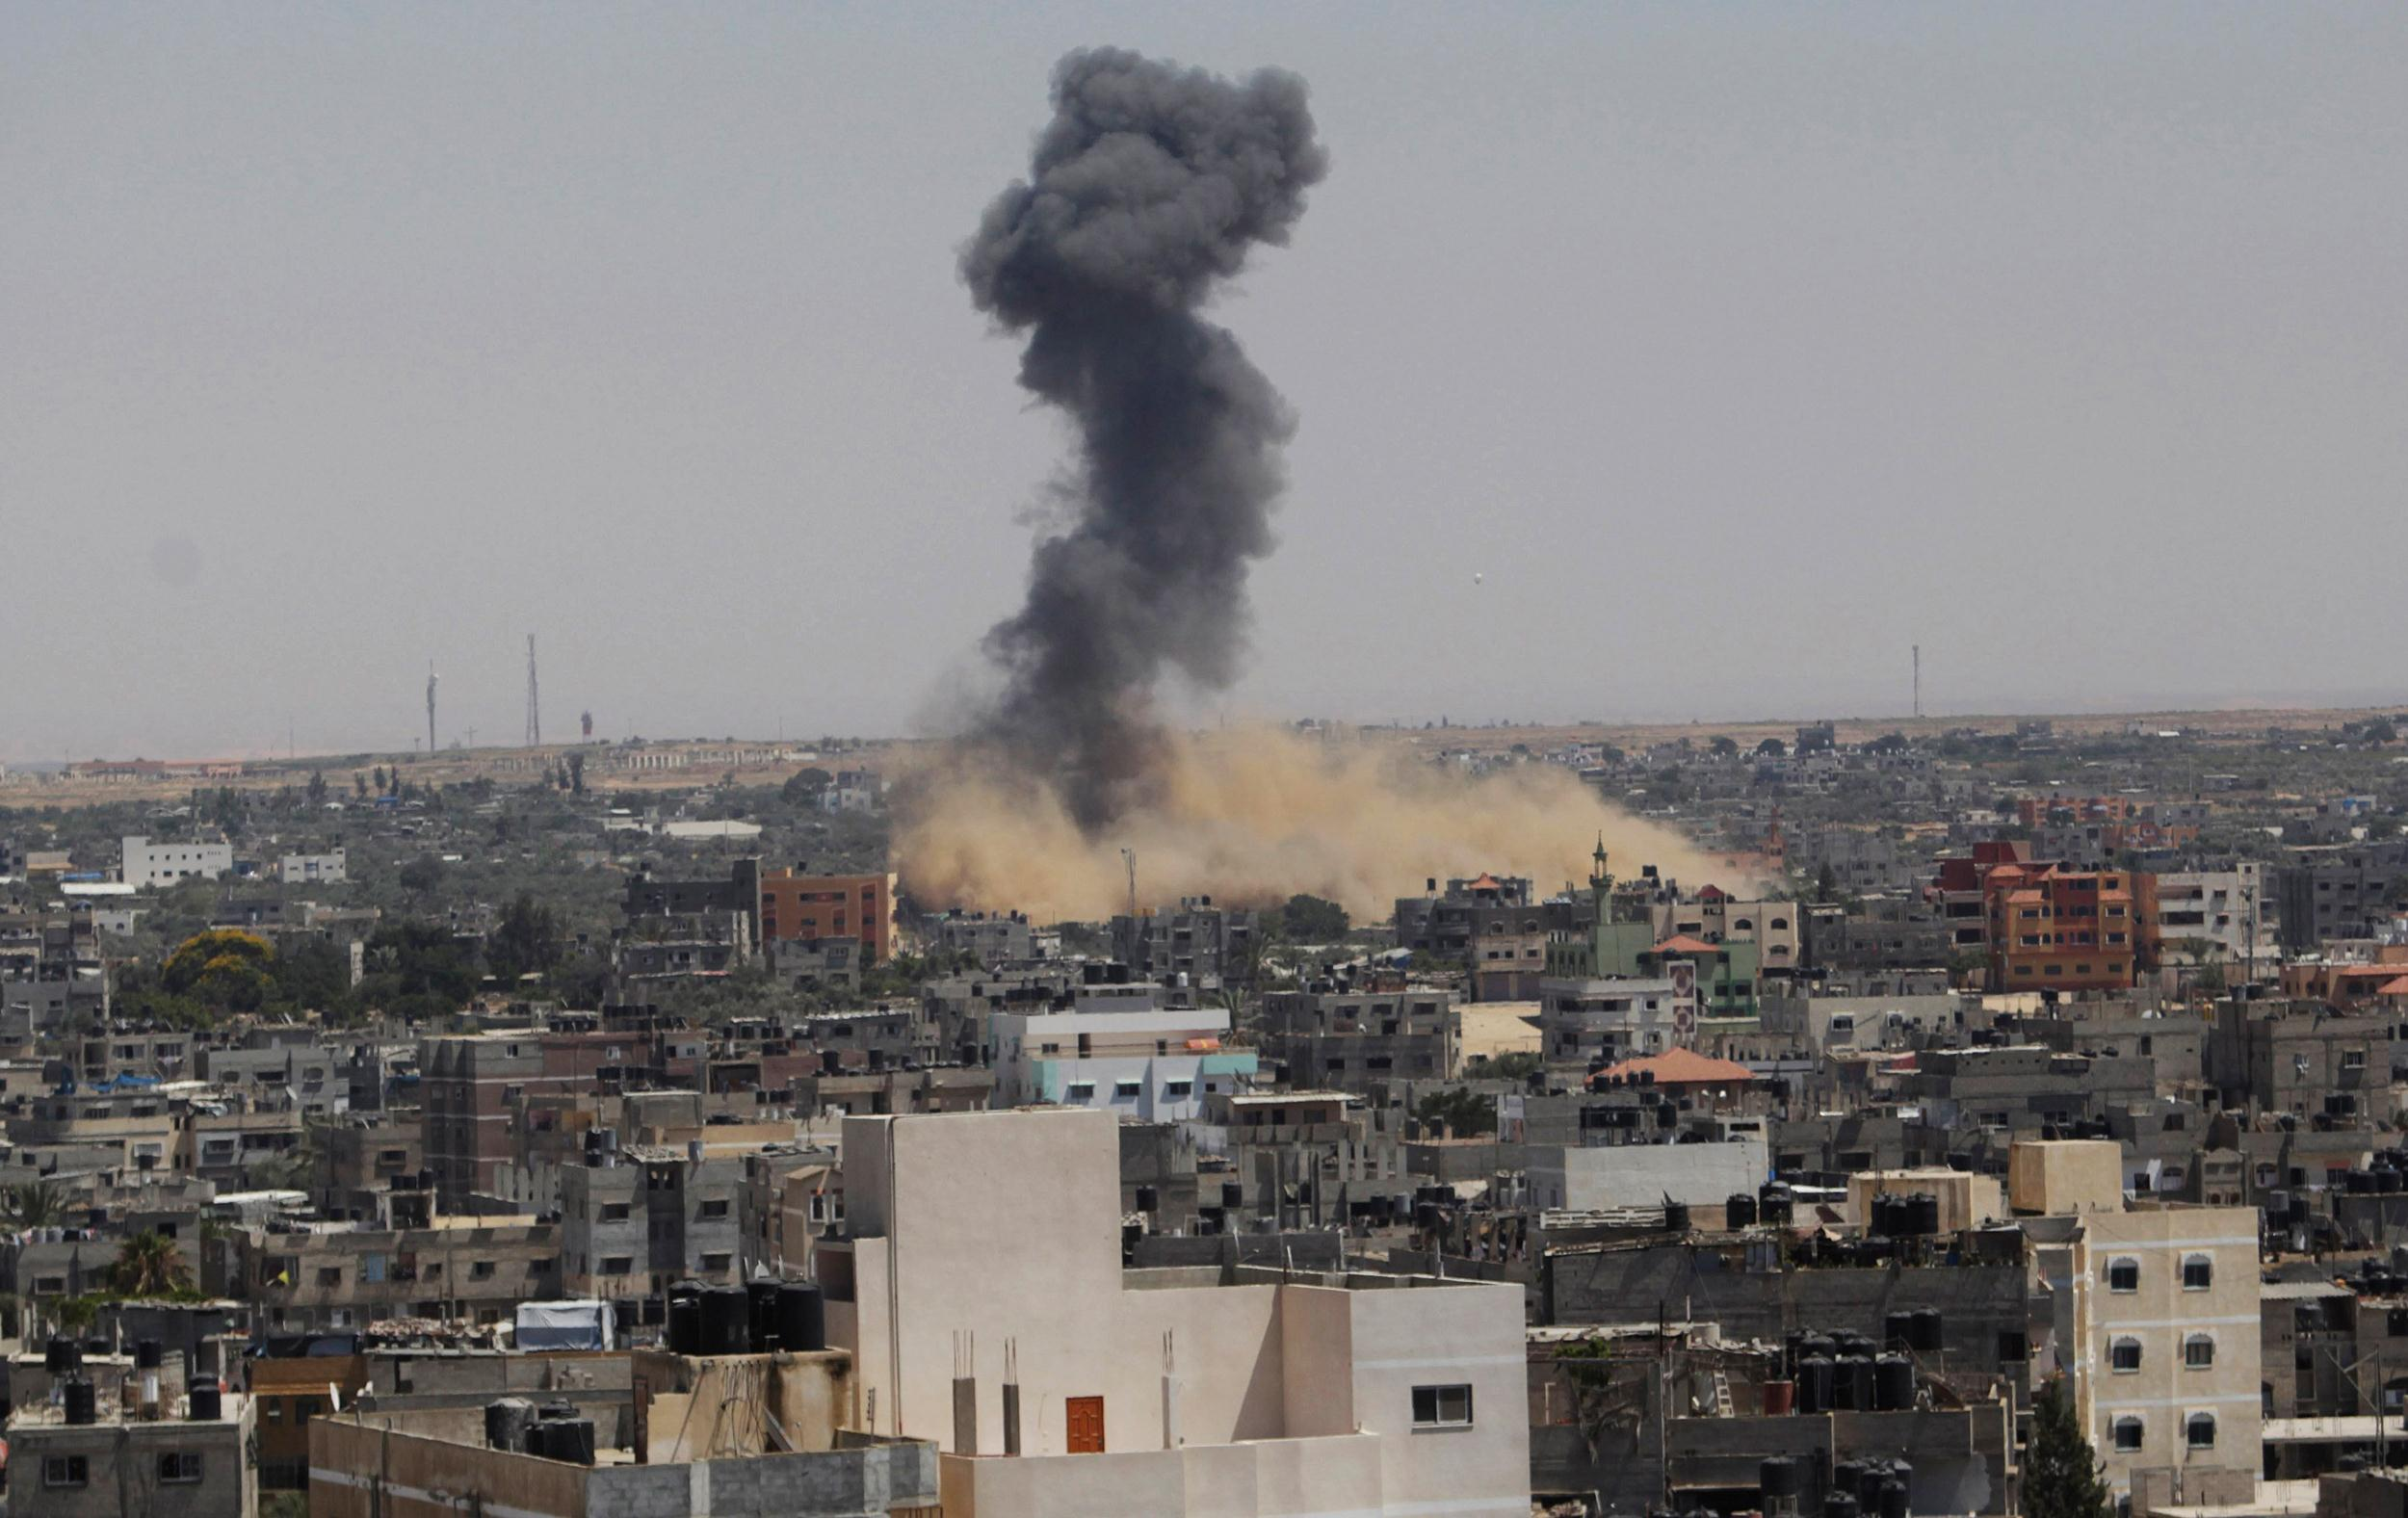 Image: Smoke rises following what witnesses said was an Israeli air strike in Rafah in the southern Gaza Strip